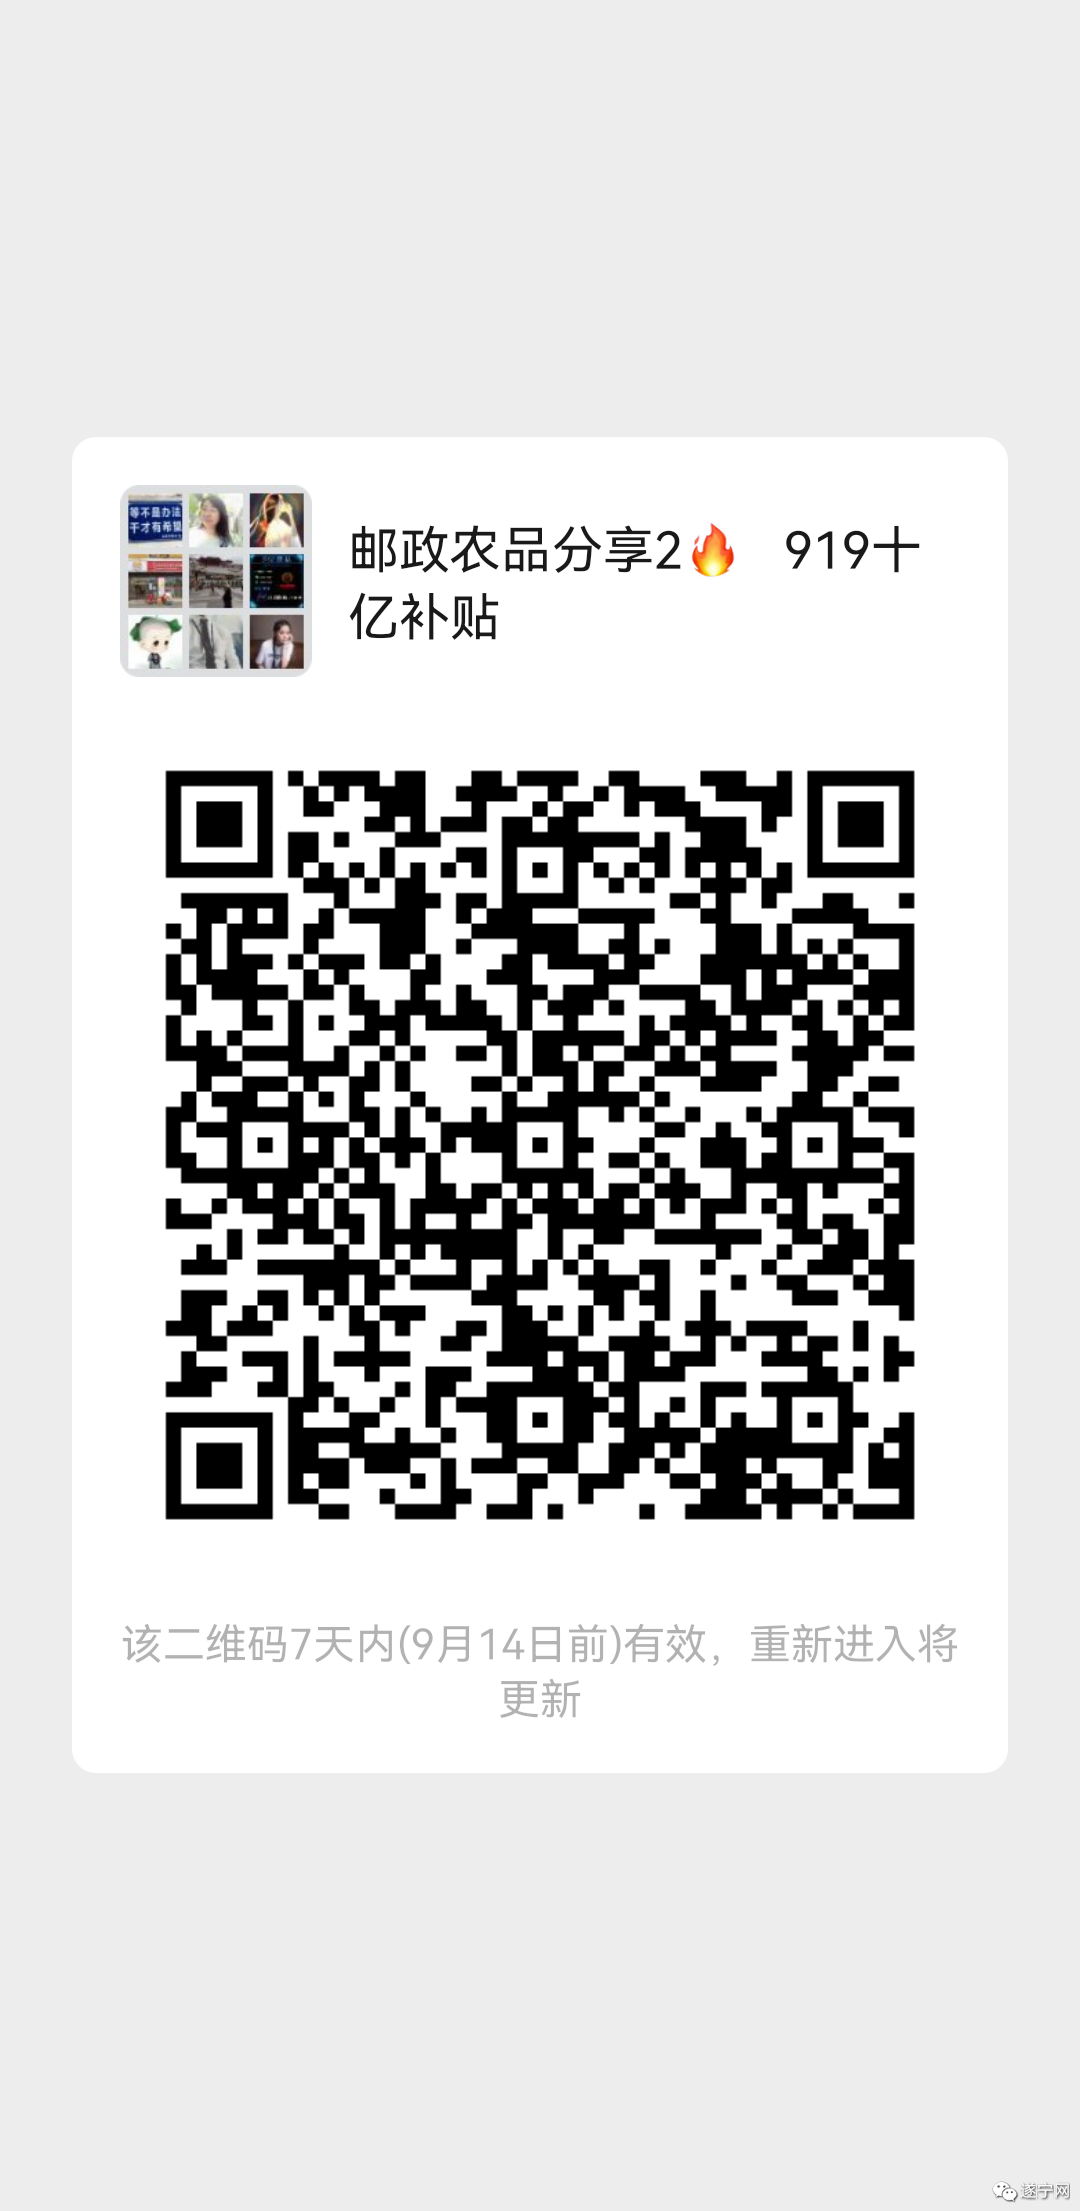 mmqrcode1630964576773.png